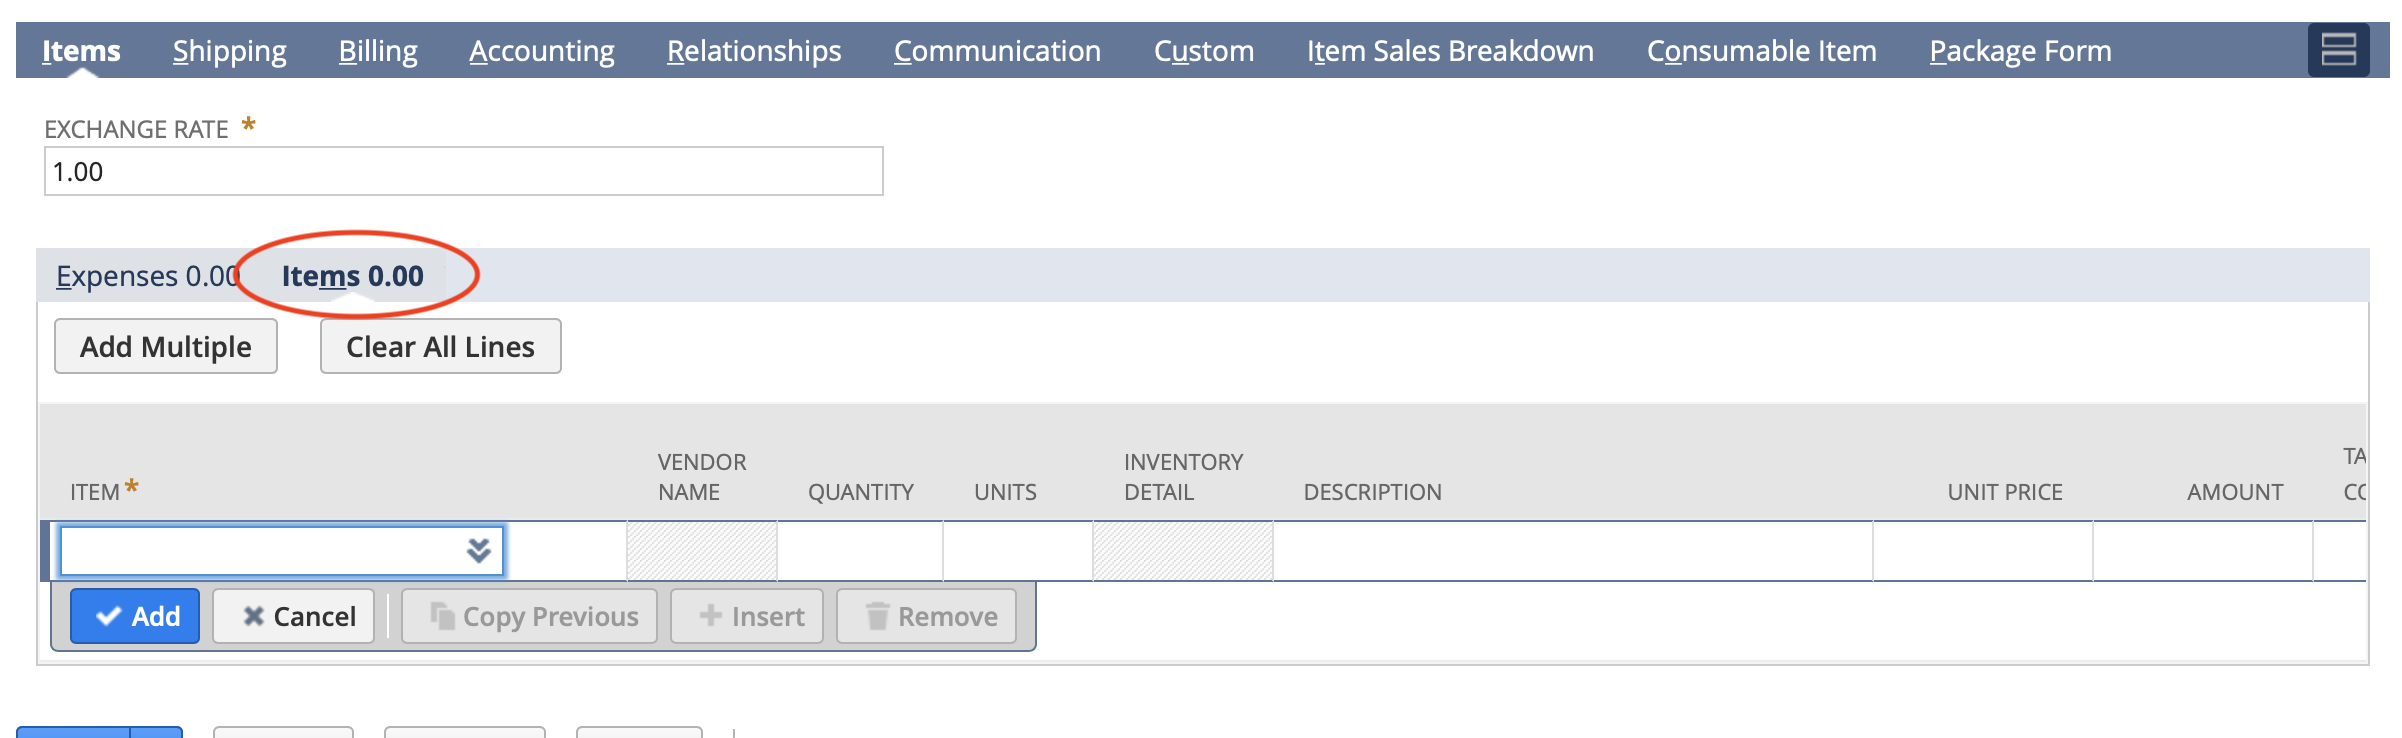 RE: Just learning NetSuite, can't figure out why my PO won't allow me to see lime items.  Its only allowing expenses.